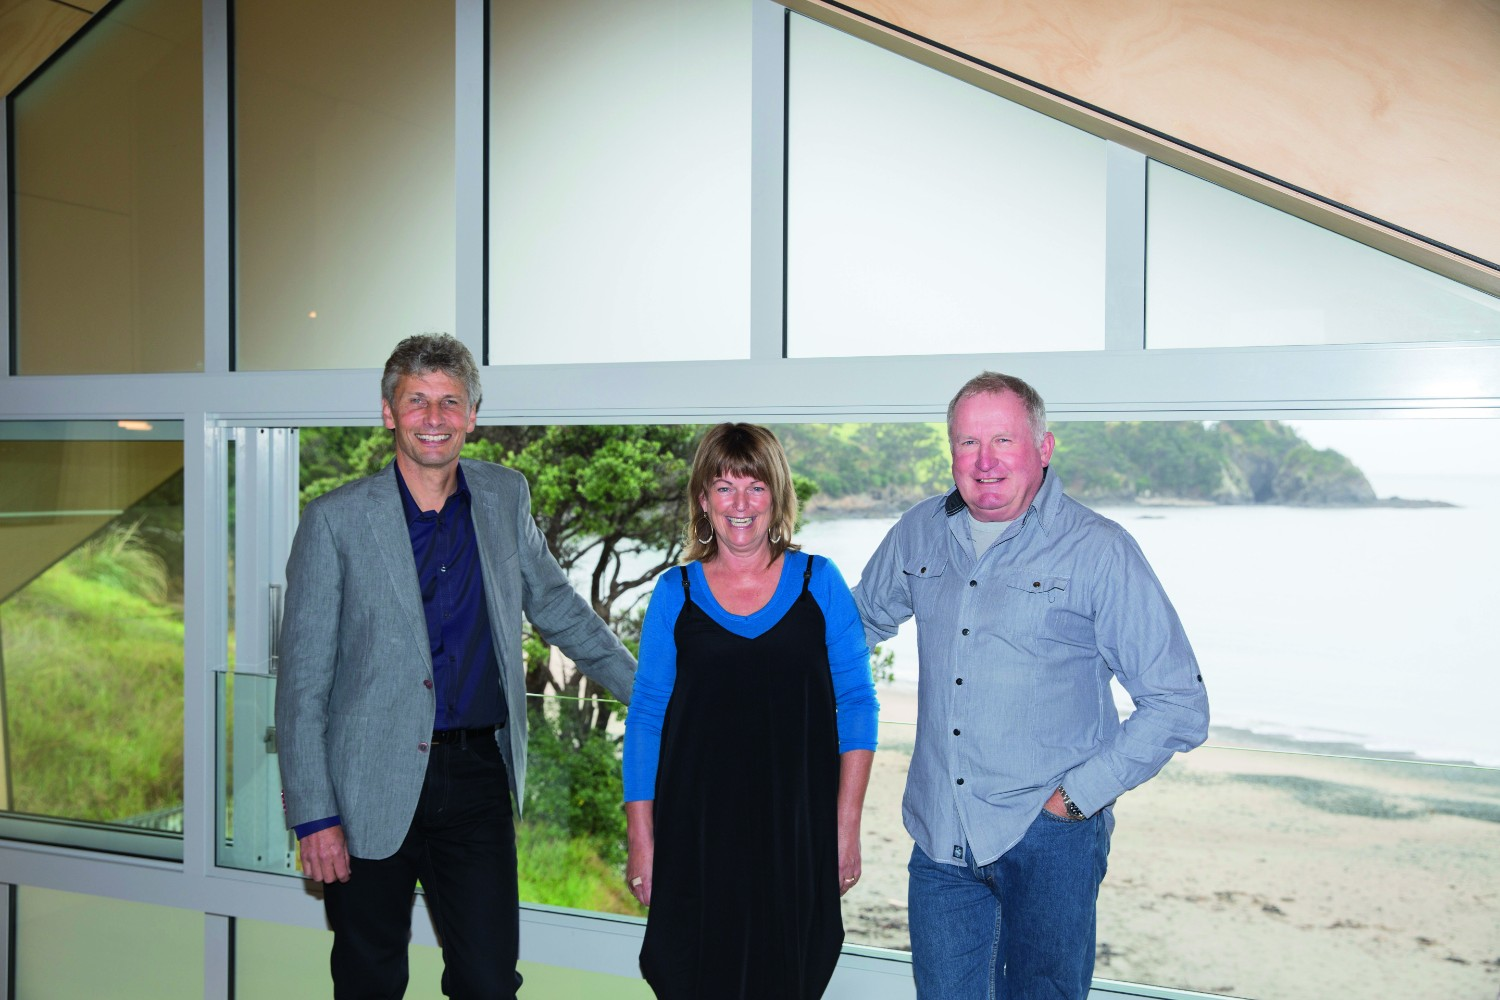 Grand Designs Australia: Rusty reveal - modern bach house - the owners of the home